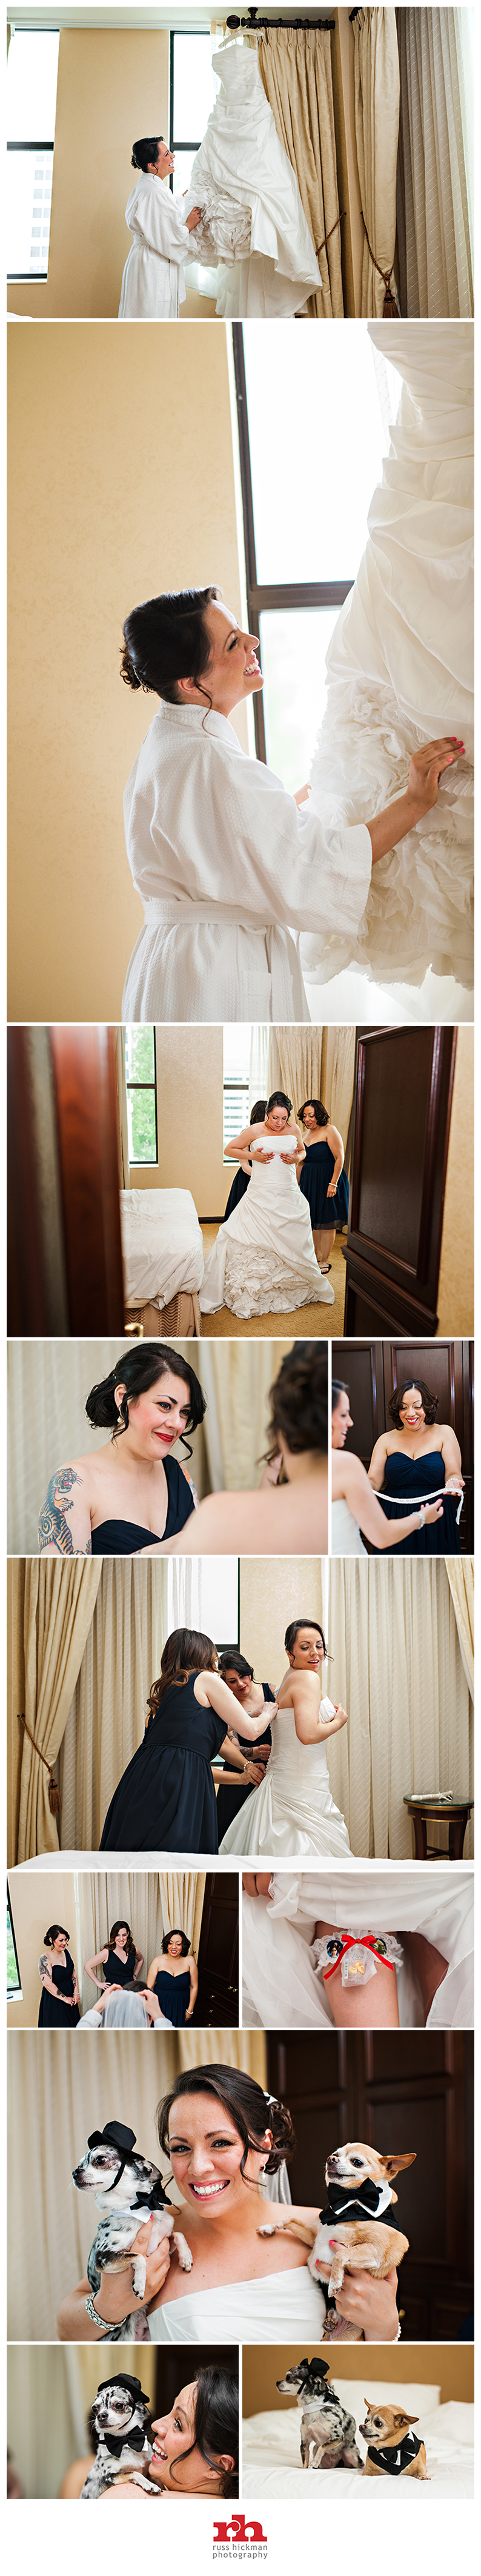 Philadelphia Wedding Photographer ABWB0003